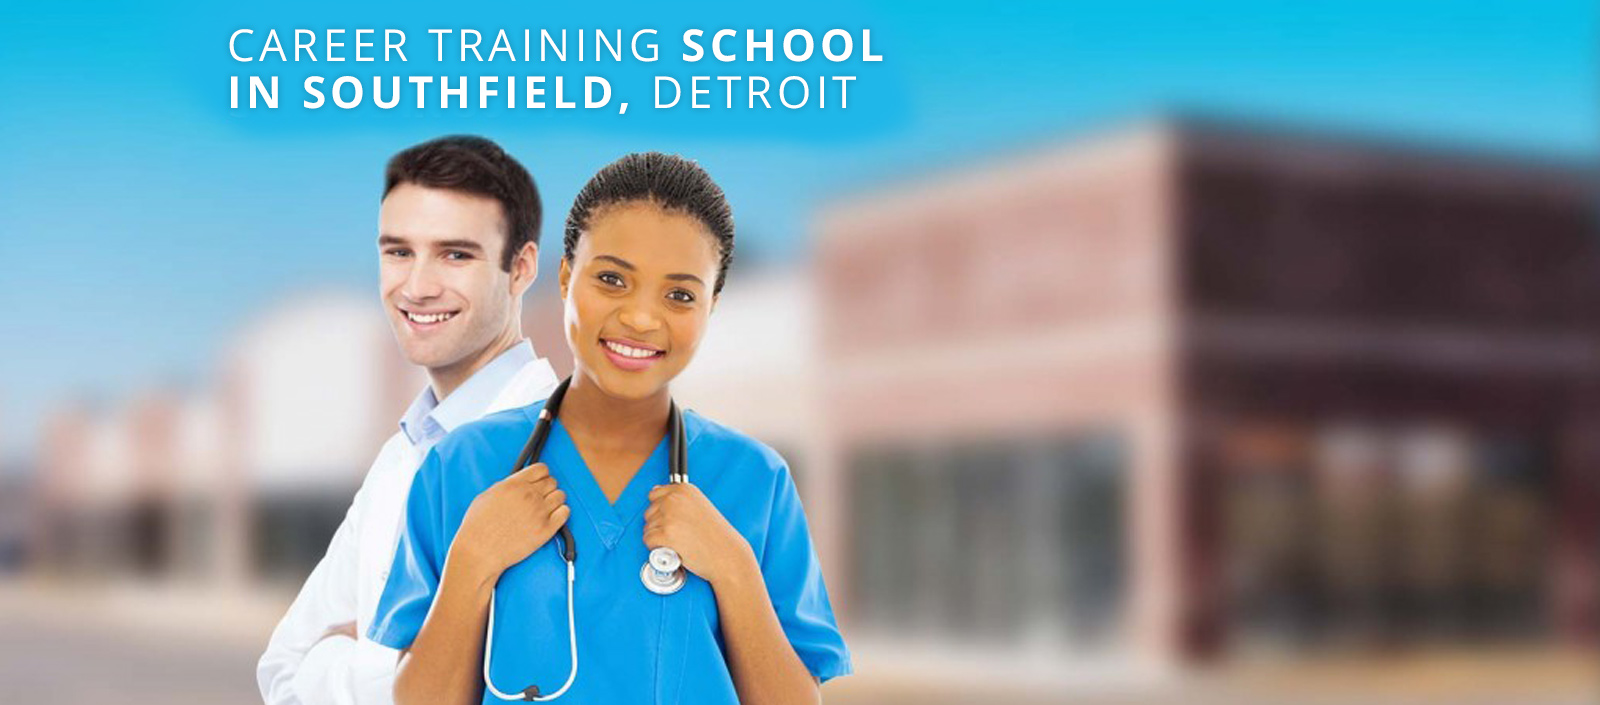 Medical Career Training School Abcott Institute